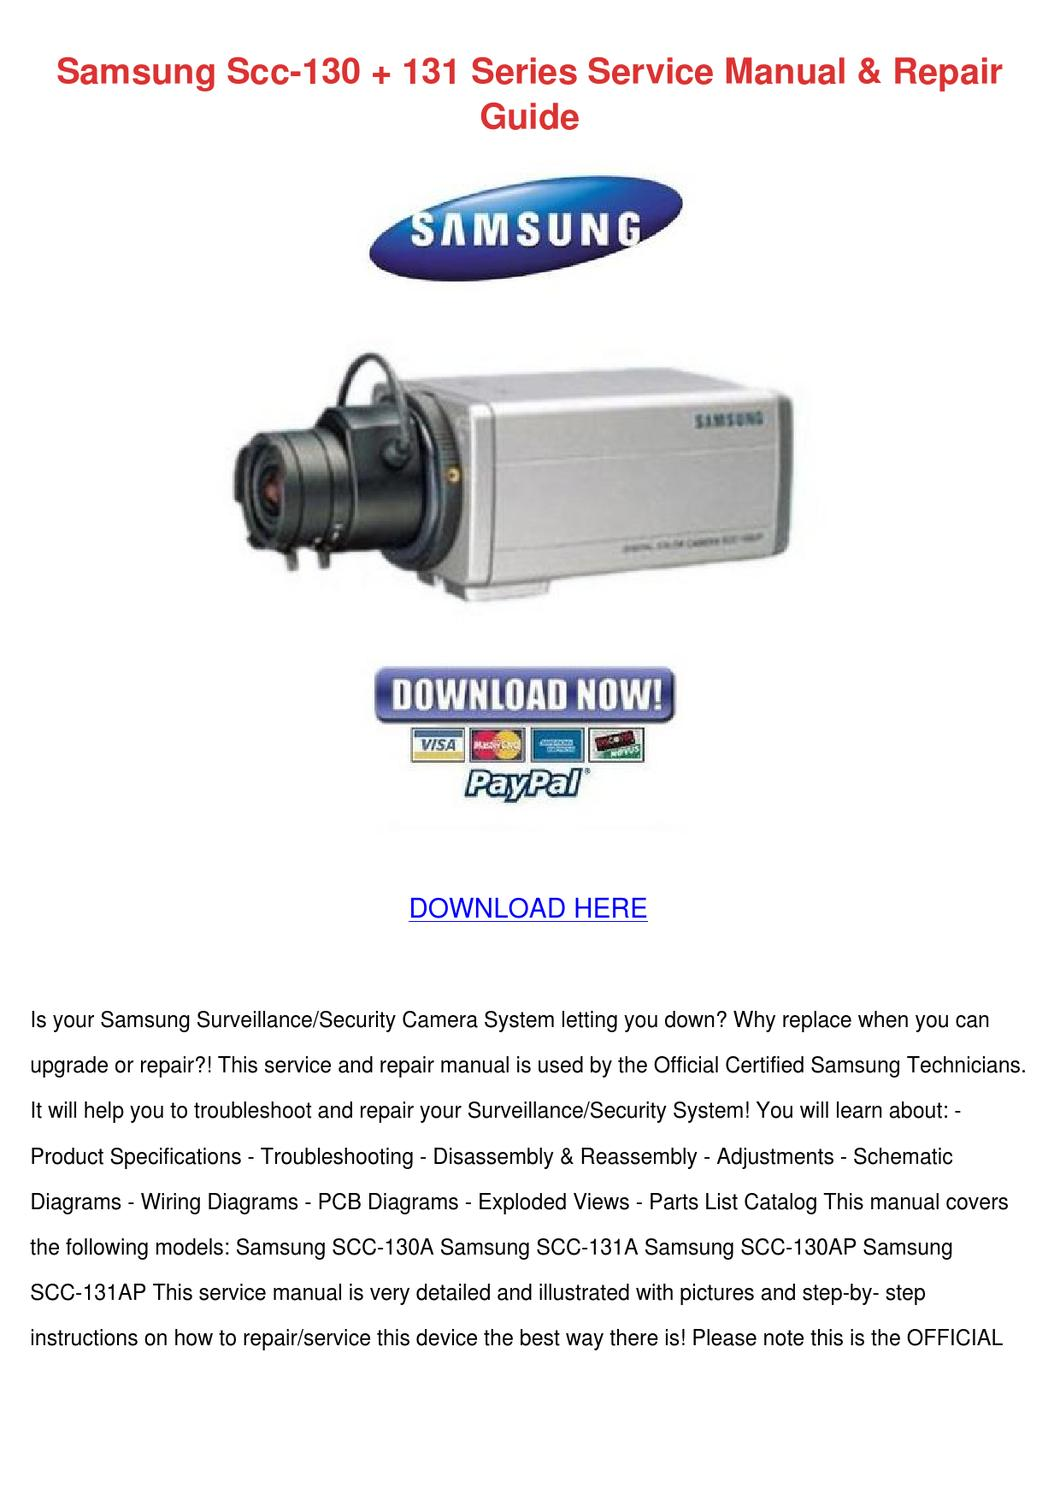 samsung scc 130 131 series service manual rep by inagarnett issuu